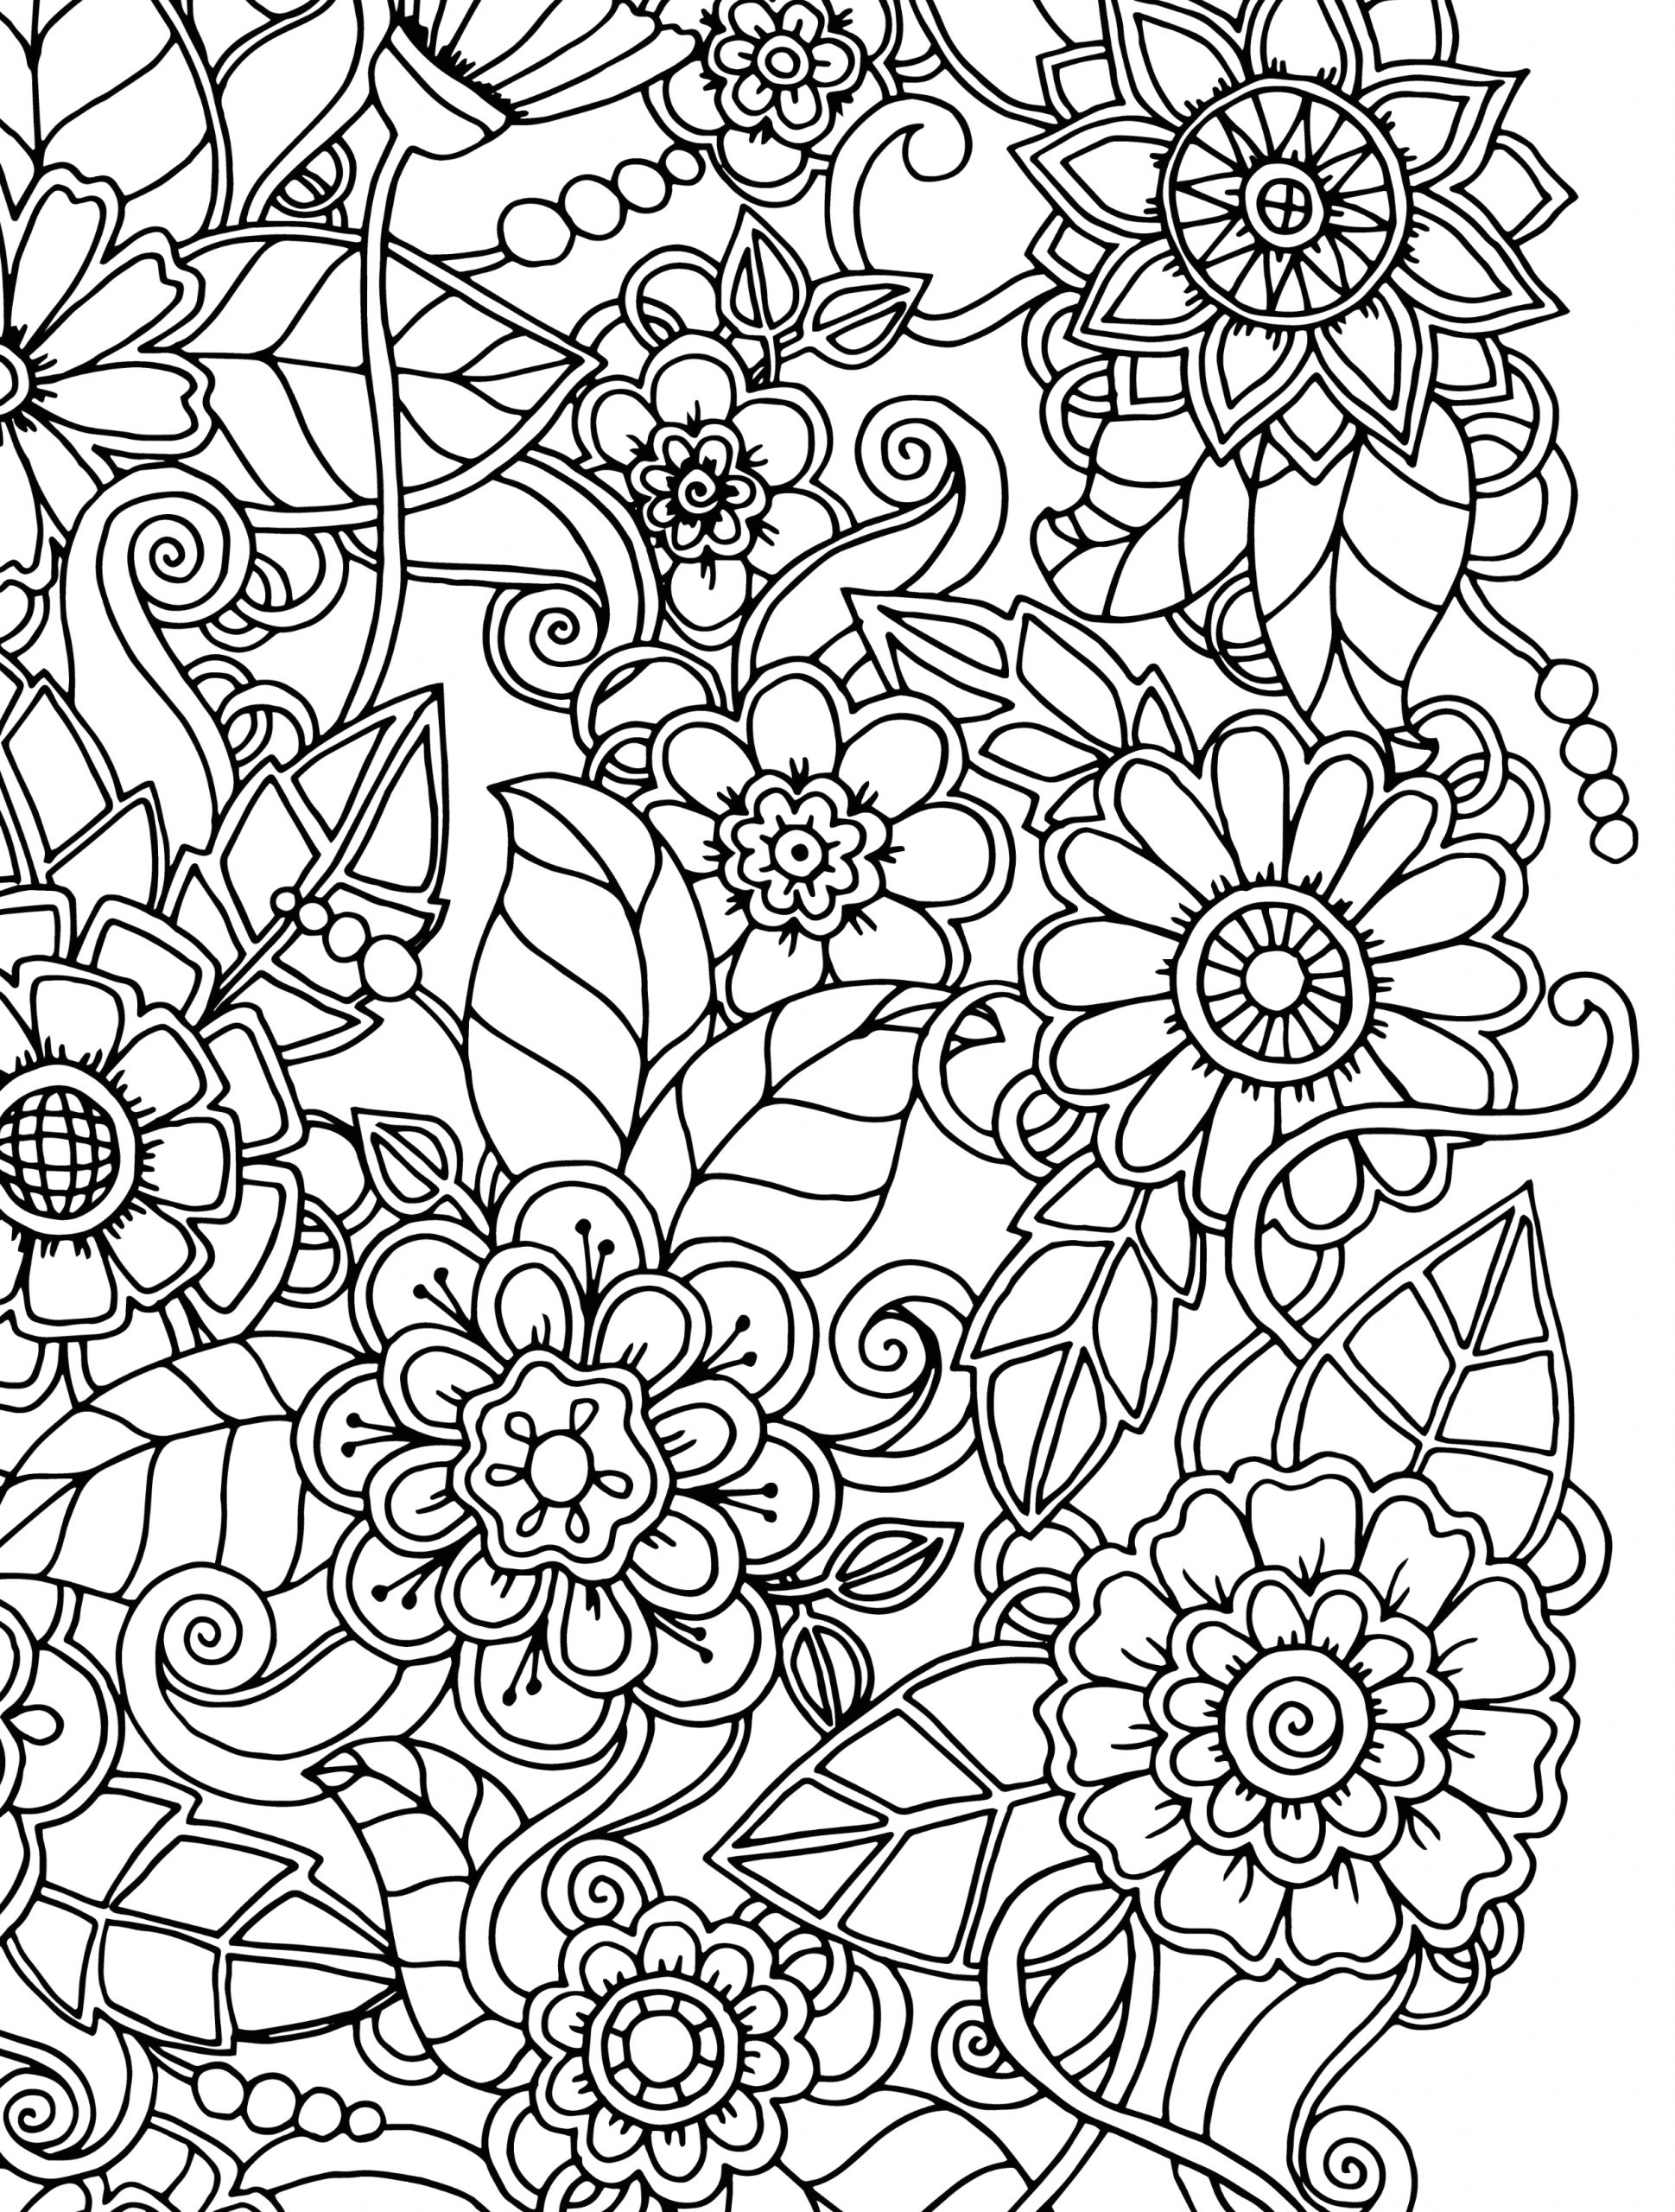 Free Coloring Pages for Adults with Dementia Coloring Pages for Dementia Patients Download